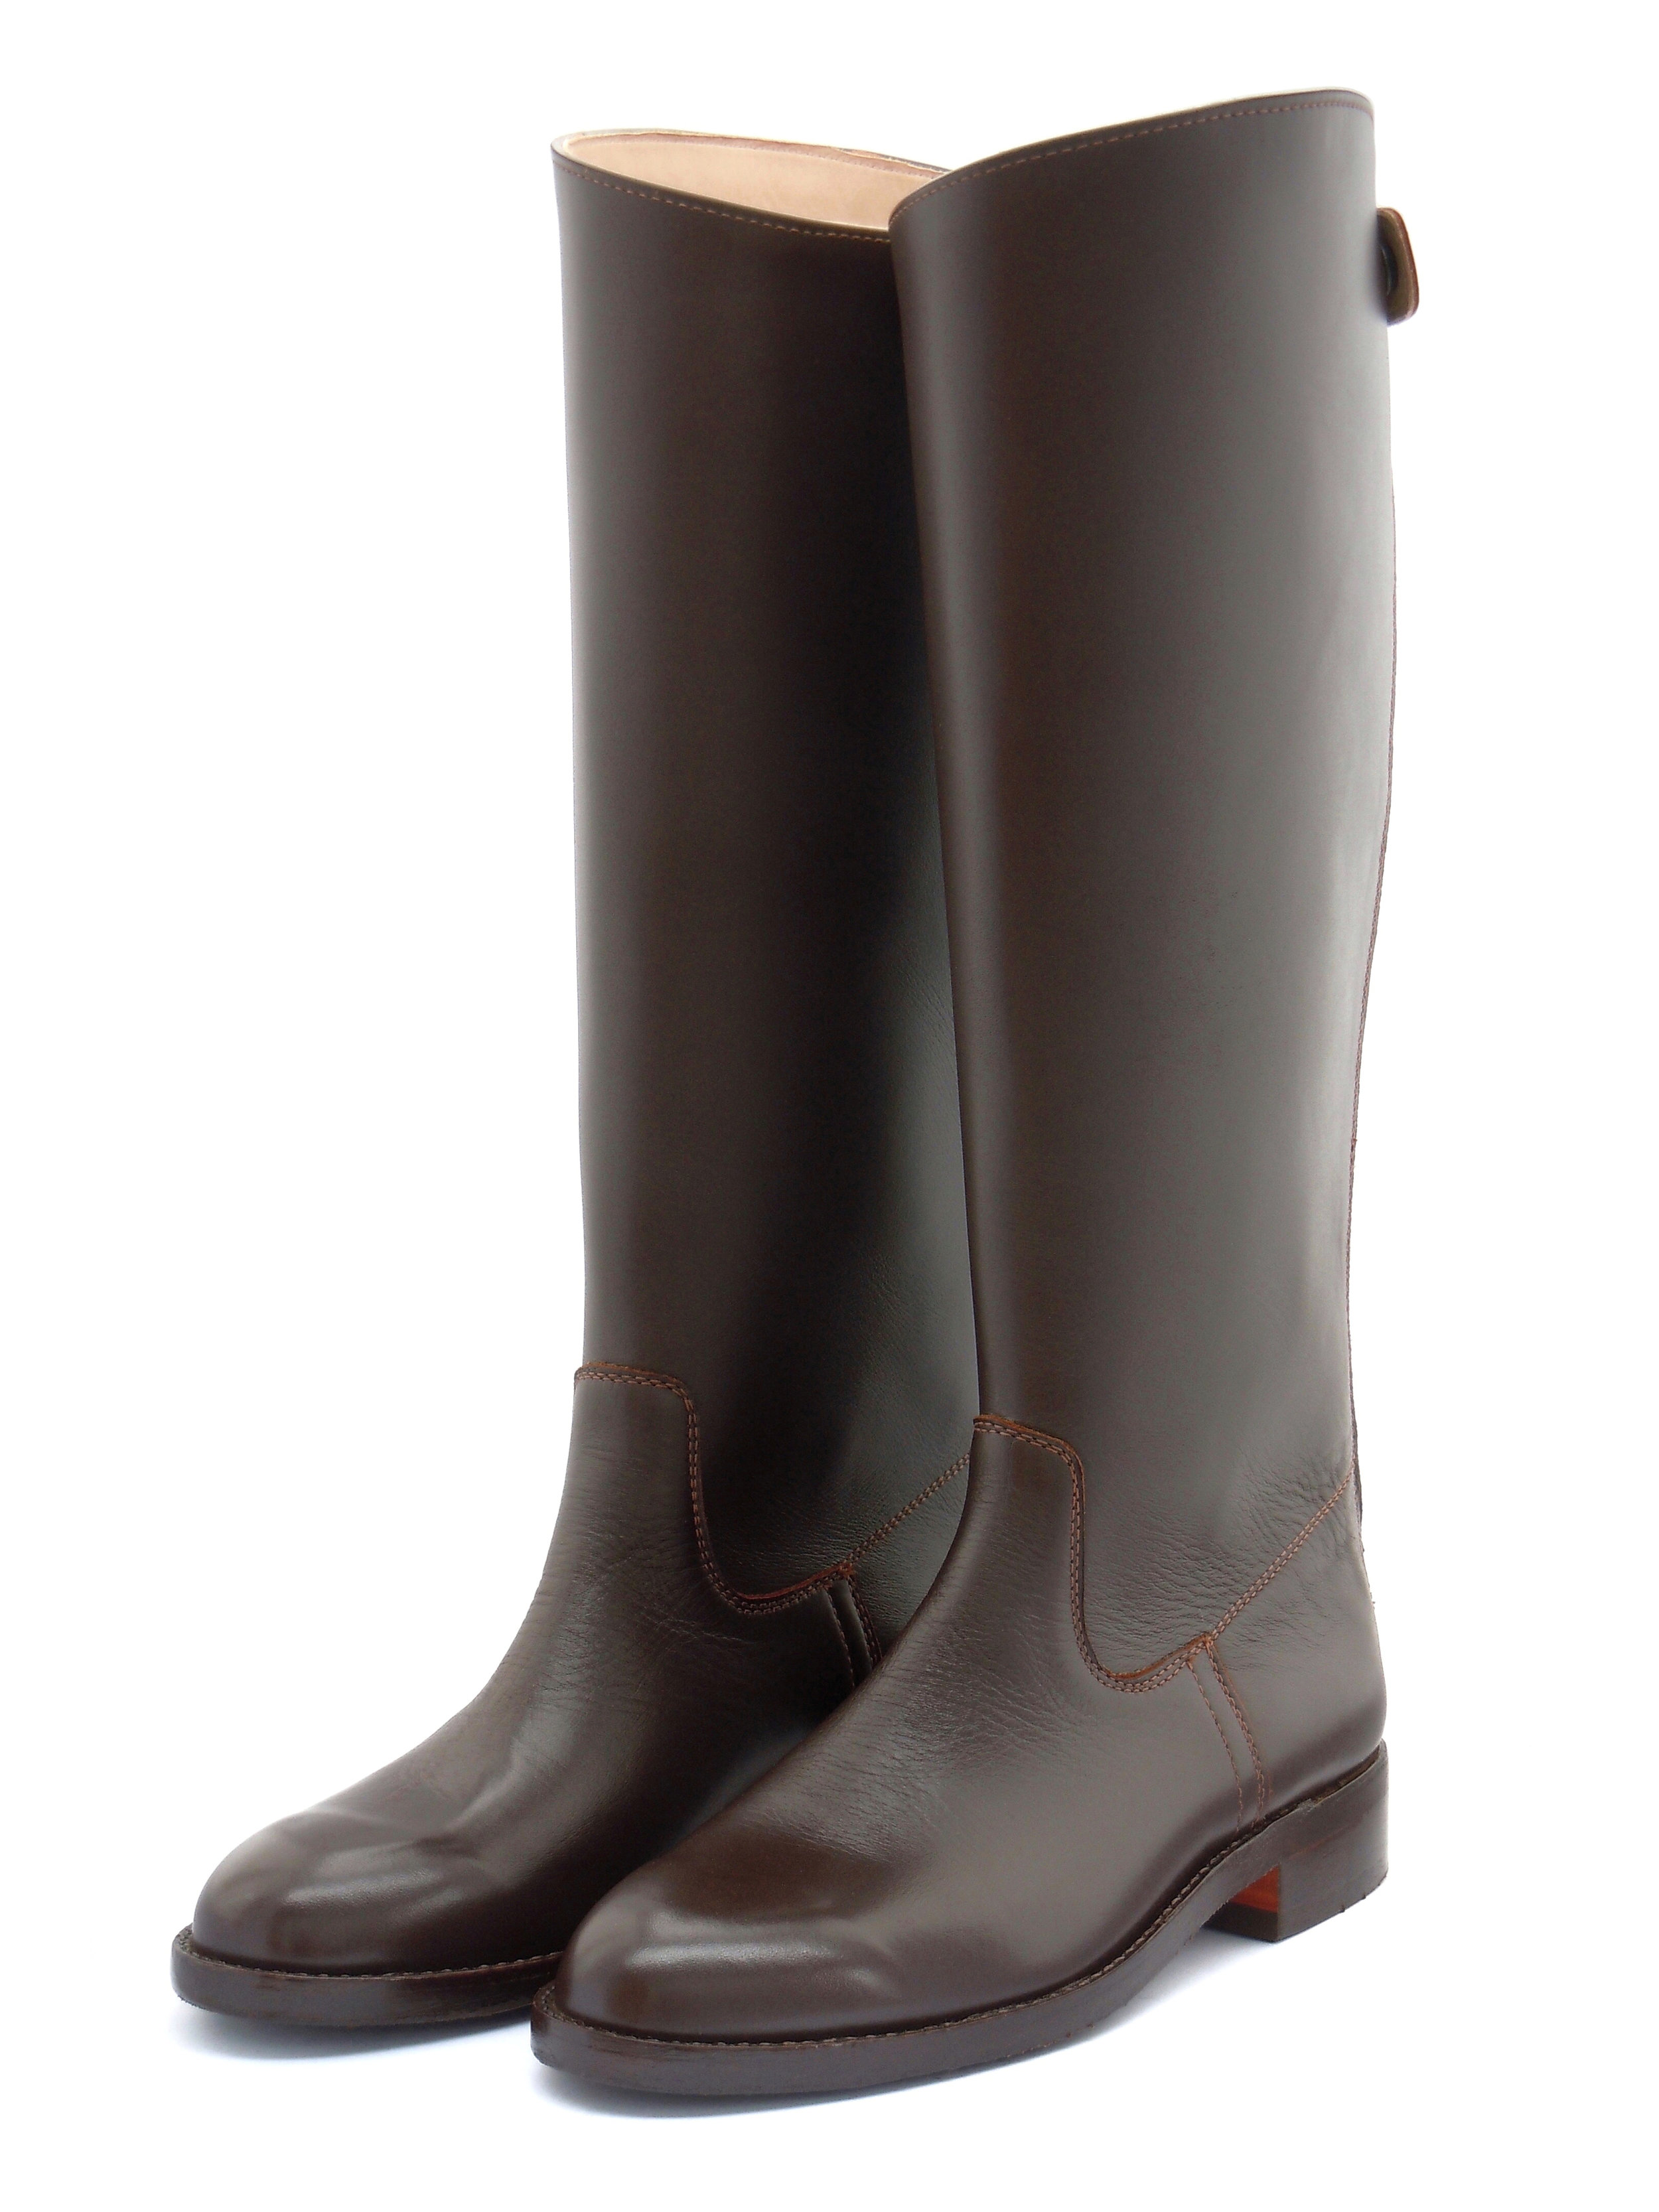 Polocrosse Boots with Curved Tops (Zip-Up)